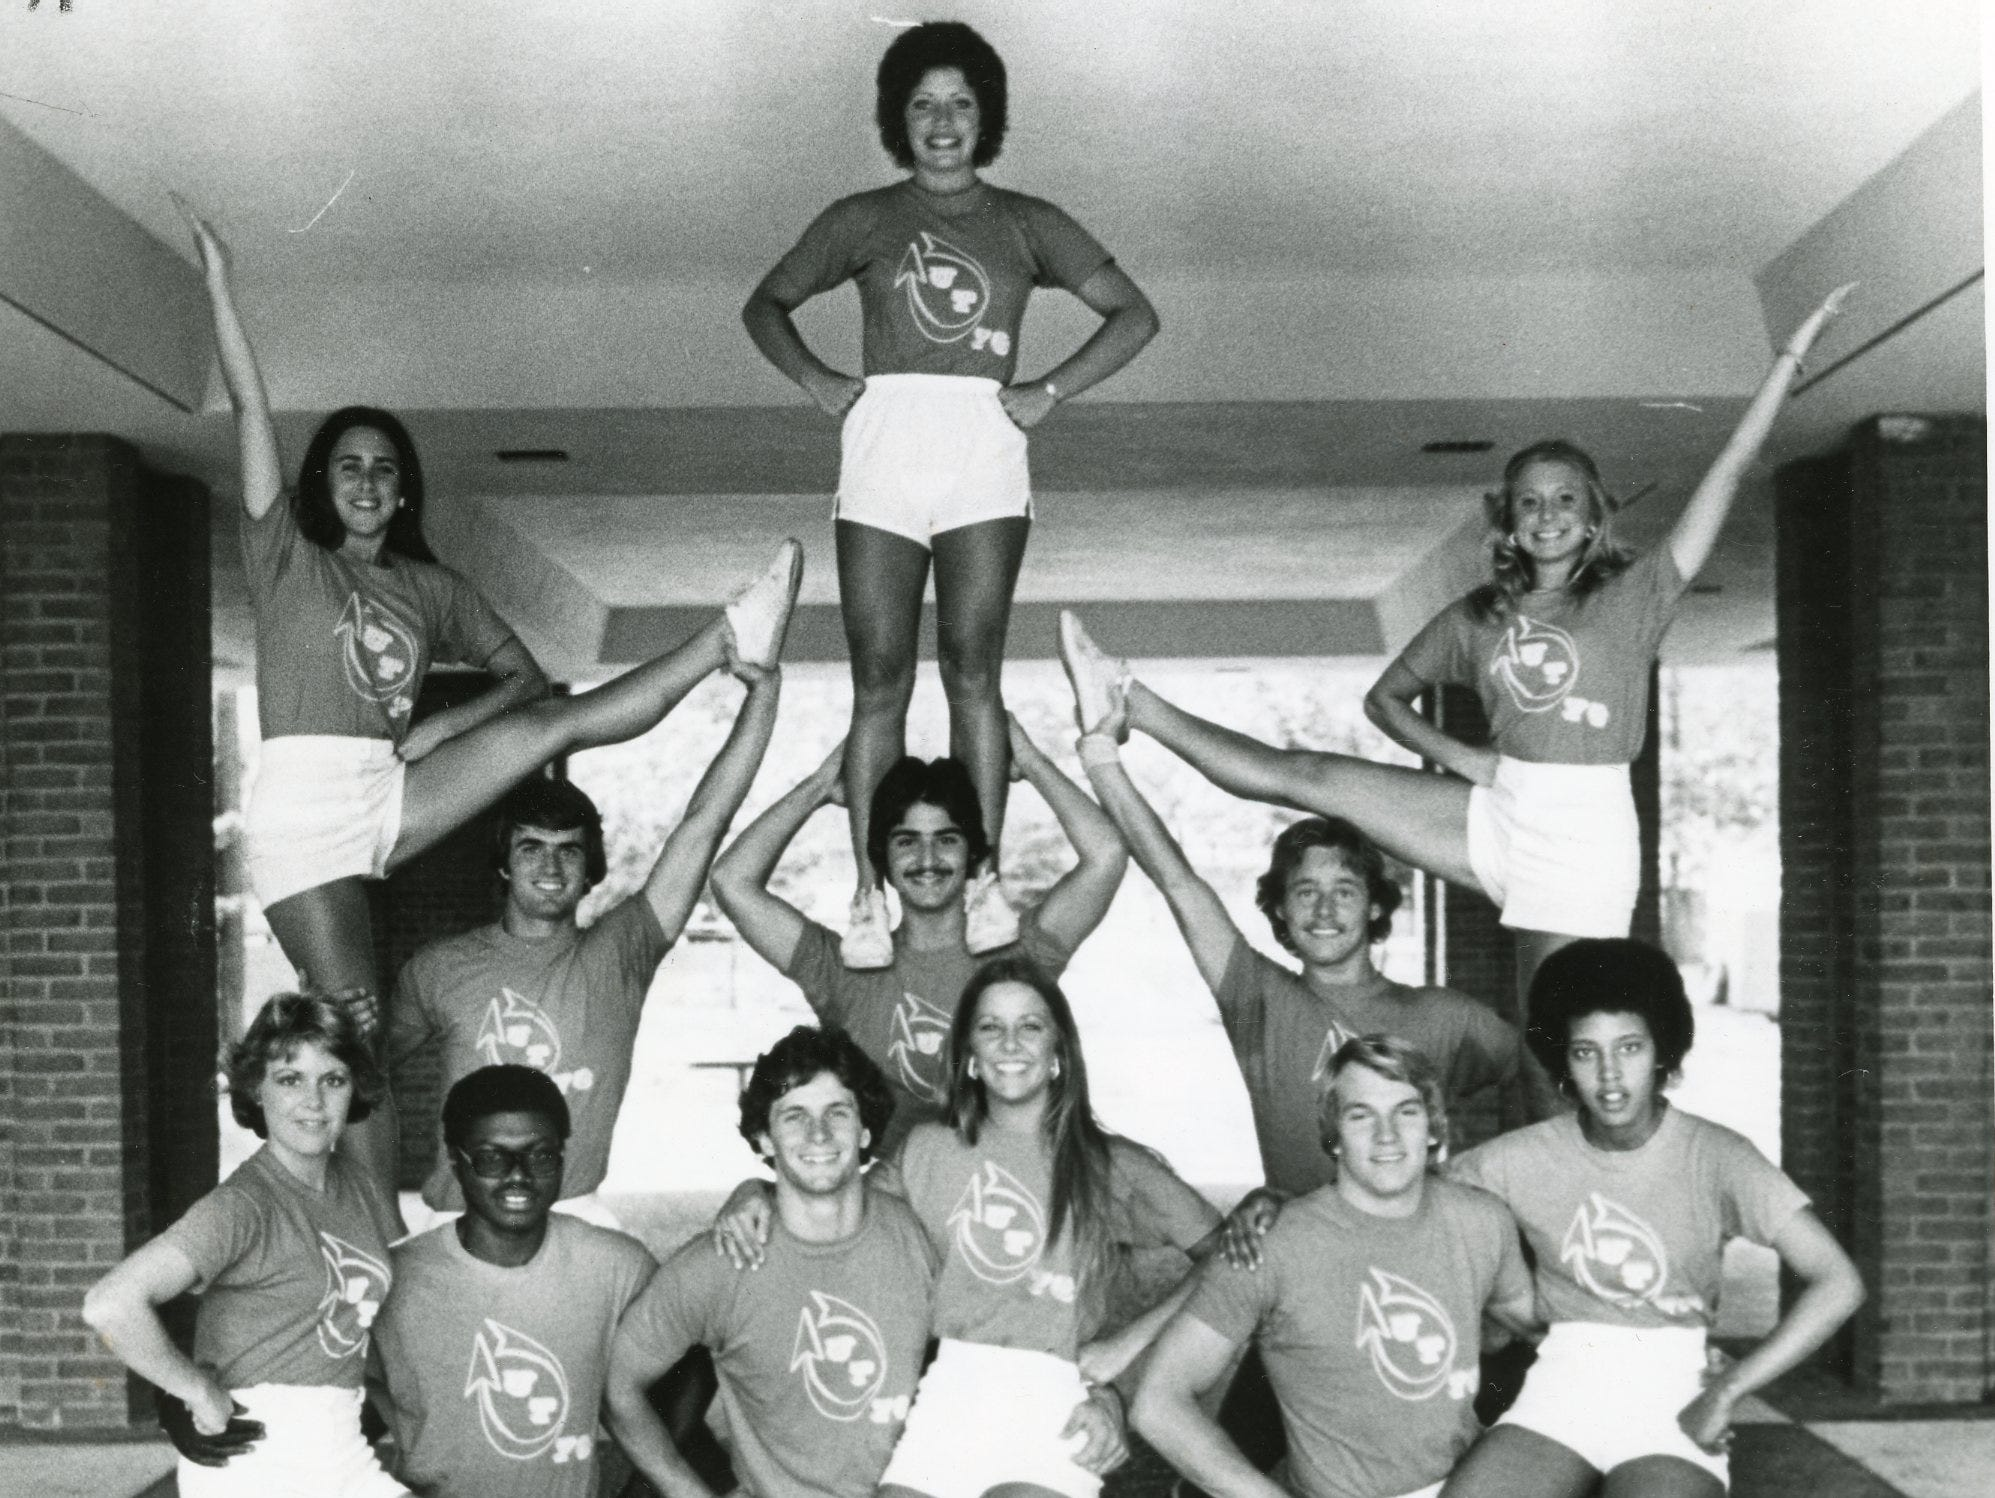 The 1976 UT cheerleaders included (front) Sandy Symes, Joel Weathers, Jim Petway, Pam Johnson, Curtis Epperson, Cheryl Williams; (back) Ann Runyan, Chuck Lyle, Sandy Reel co-captain, John Ferreri Terry Clark captain and Gayle Hawkins.